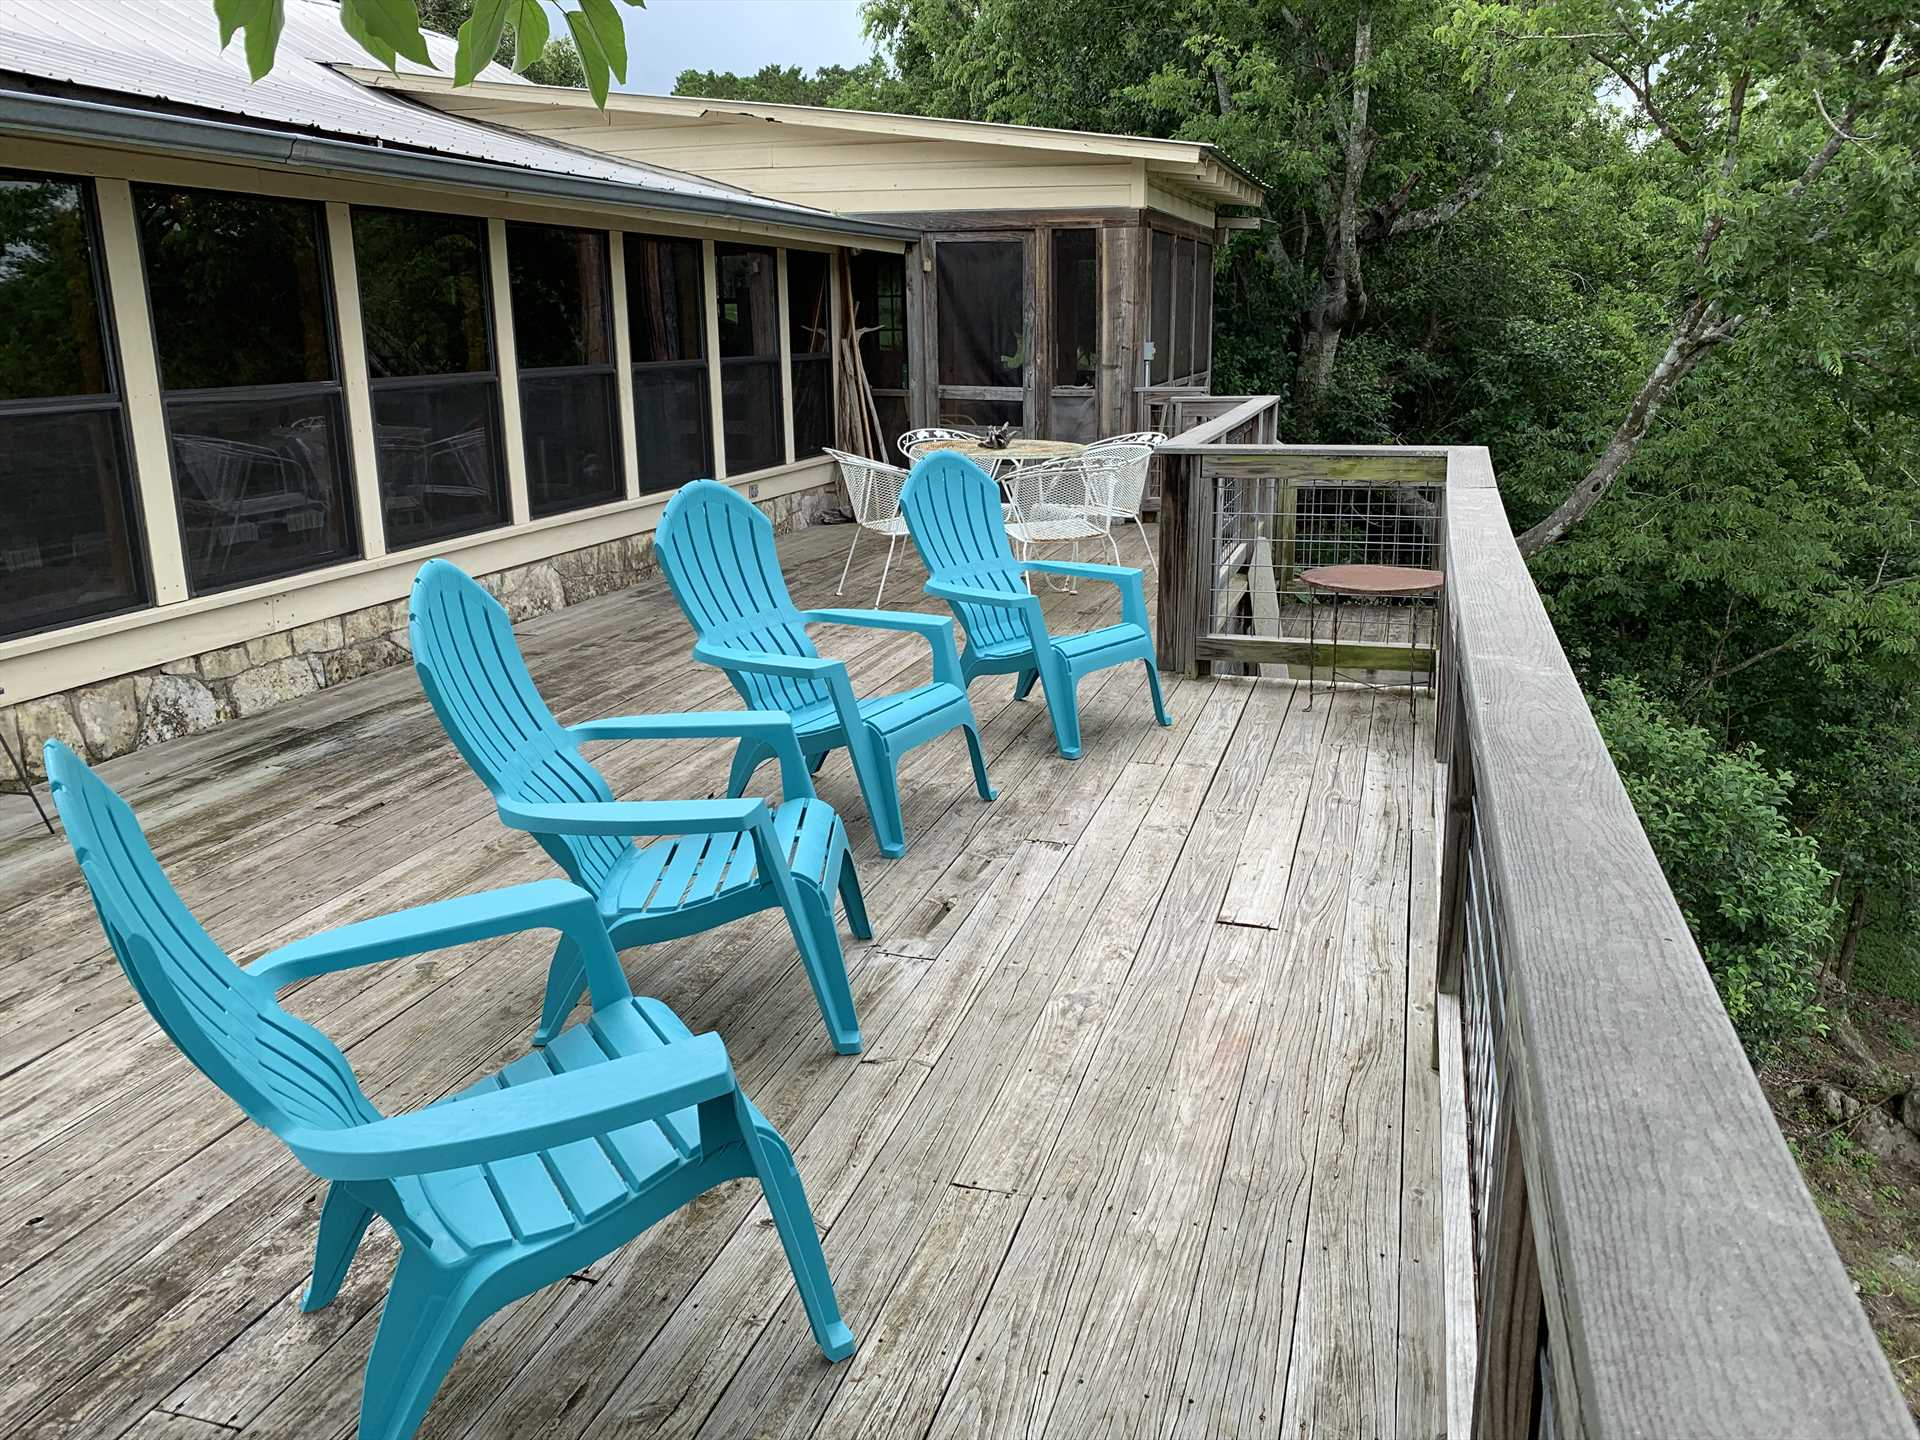 The sunny back deck is a great spot to stargaze and enjoy panoramic Hill Country views.